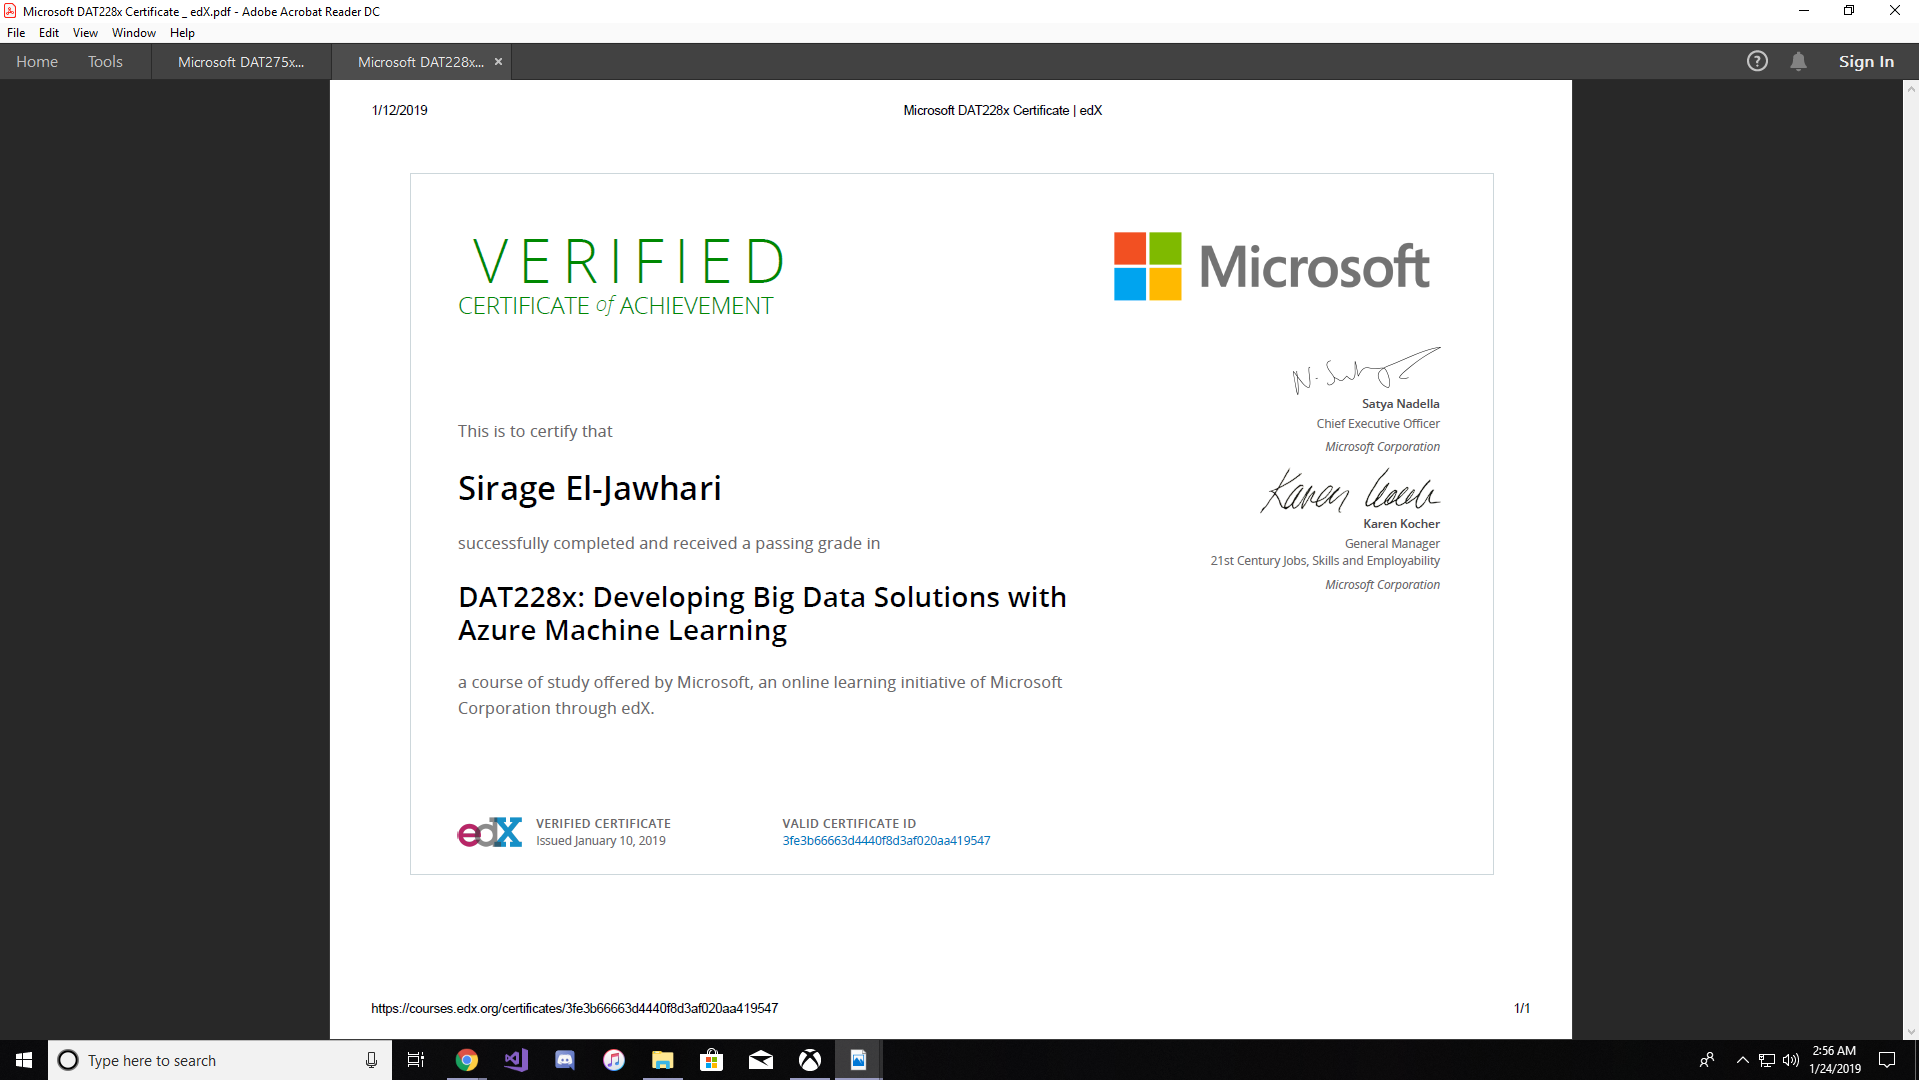 edx certificate not in sync with microsoft data sceince